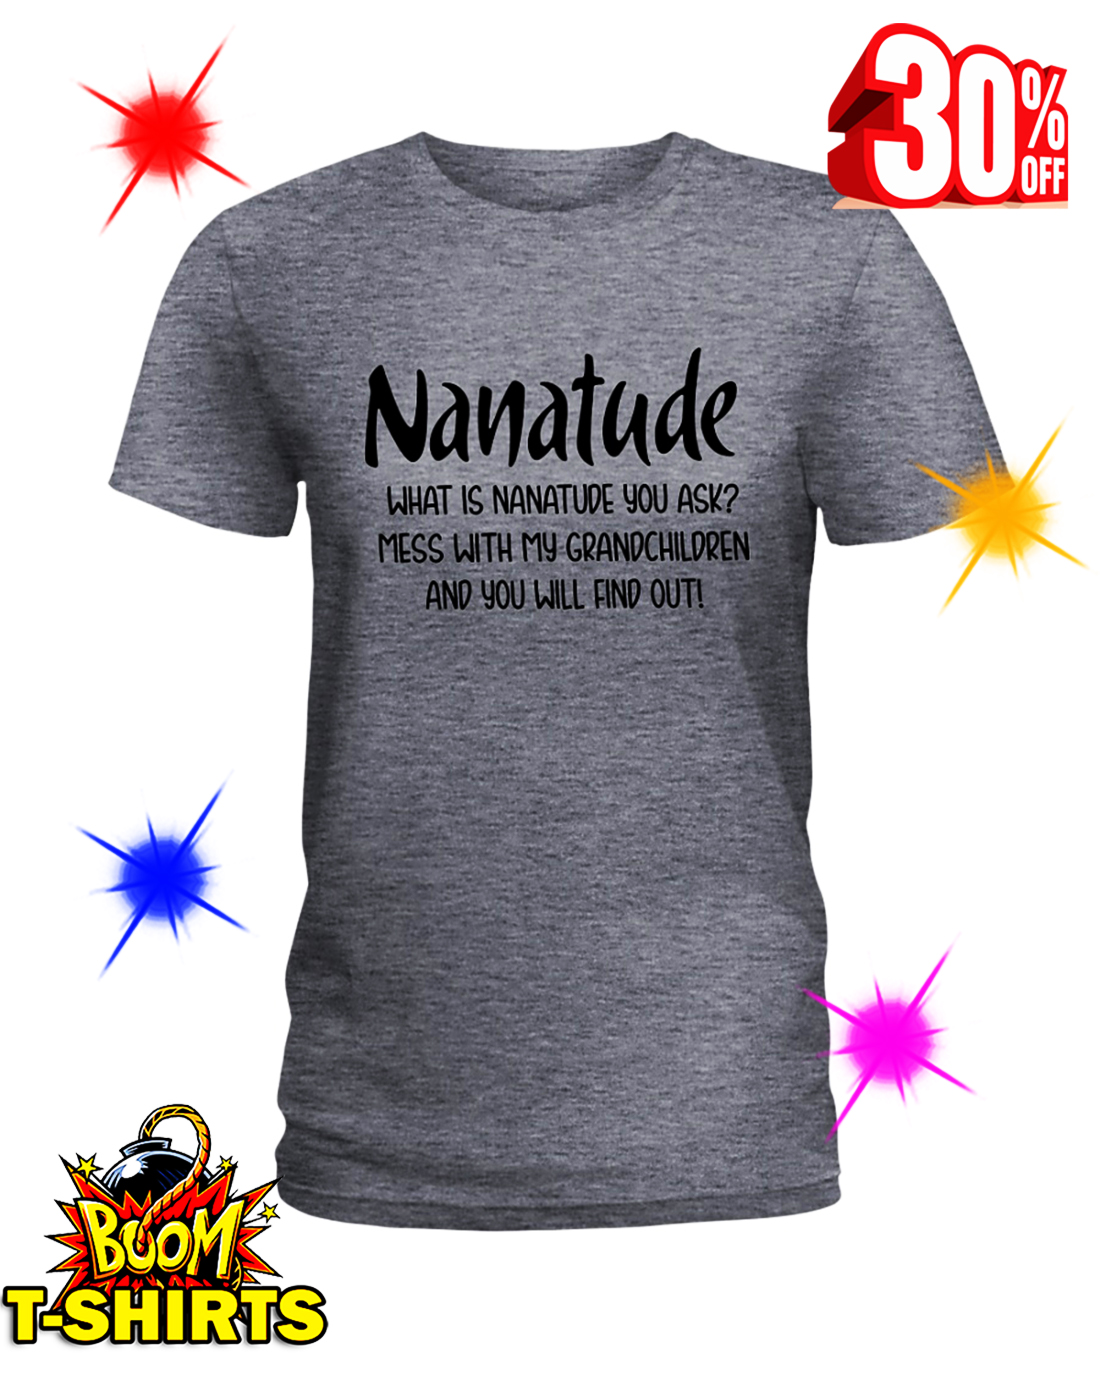 Nanatude What is Nanatude You Ask Mess With My Grandchildren and You Will Find Out shirt